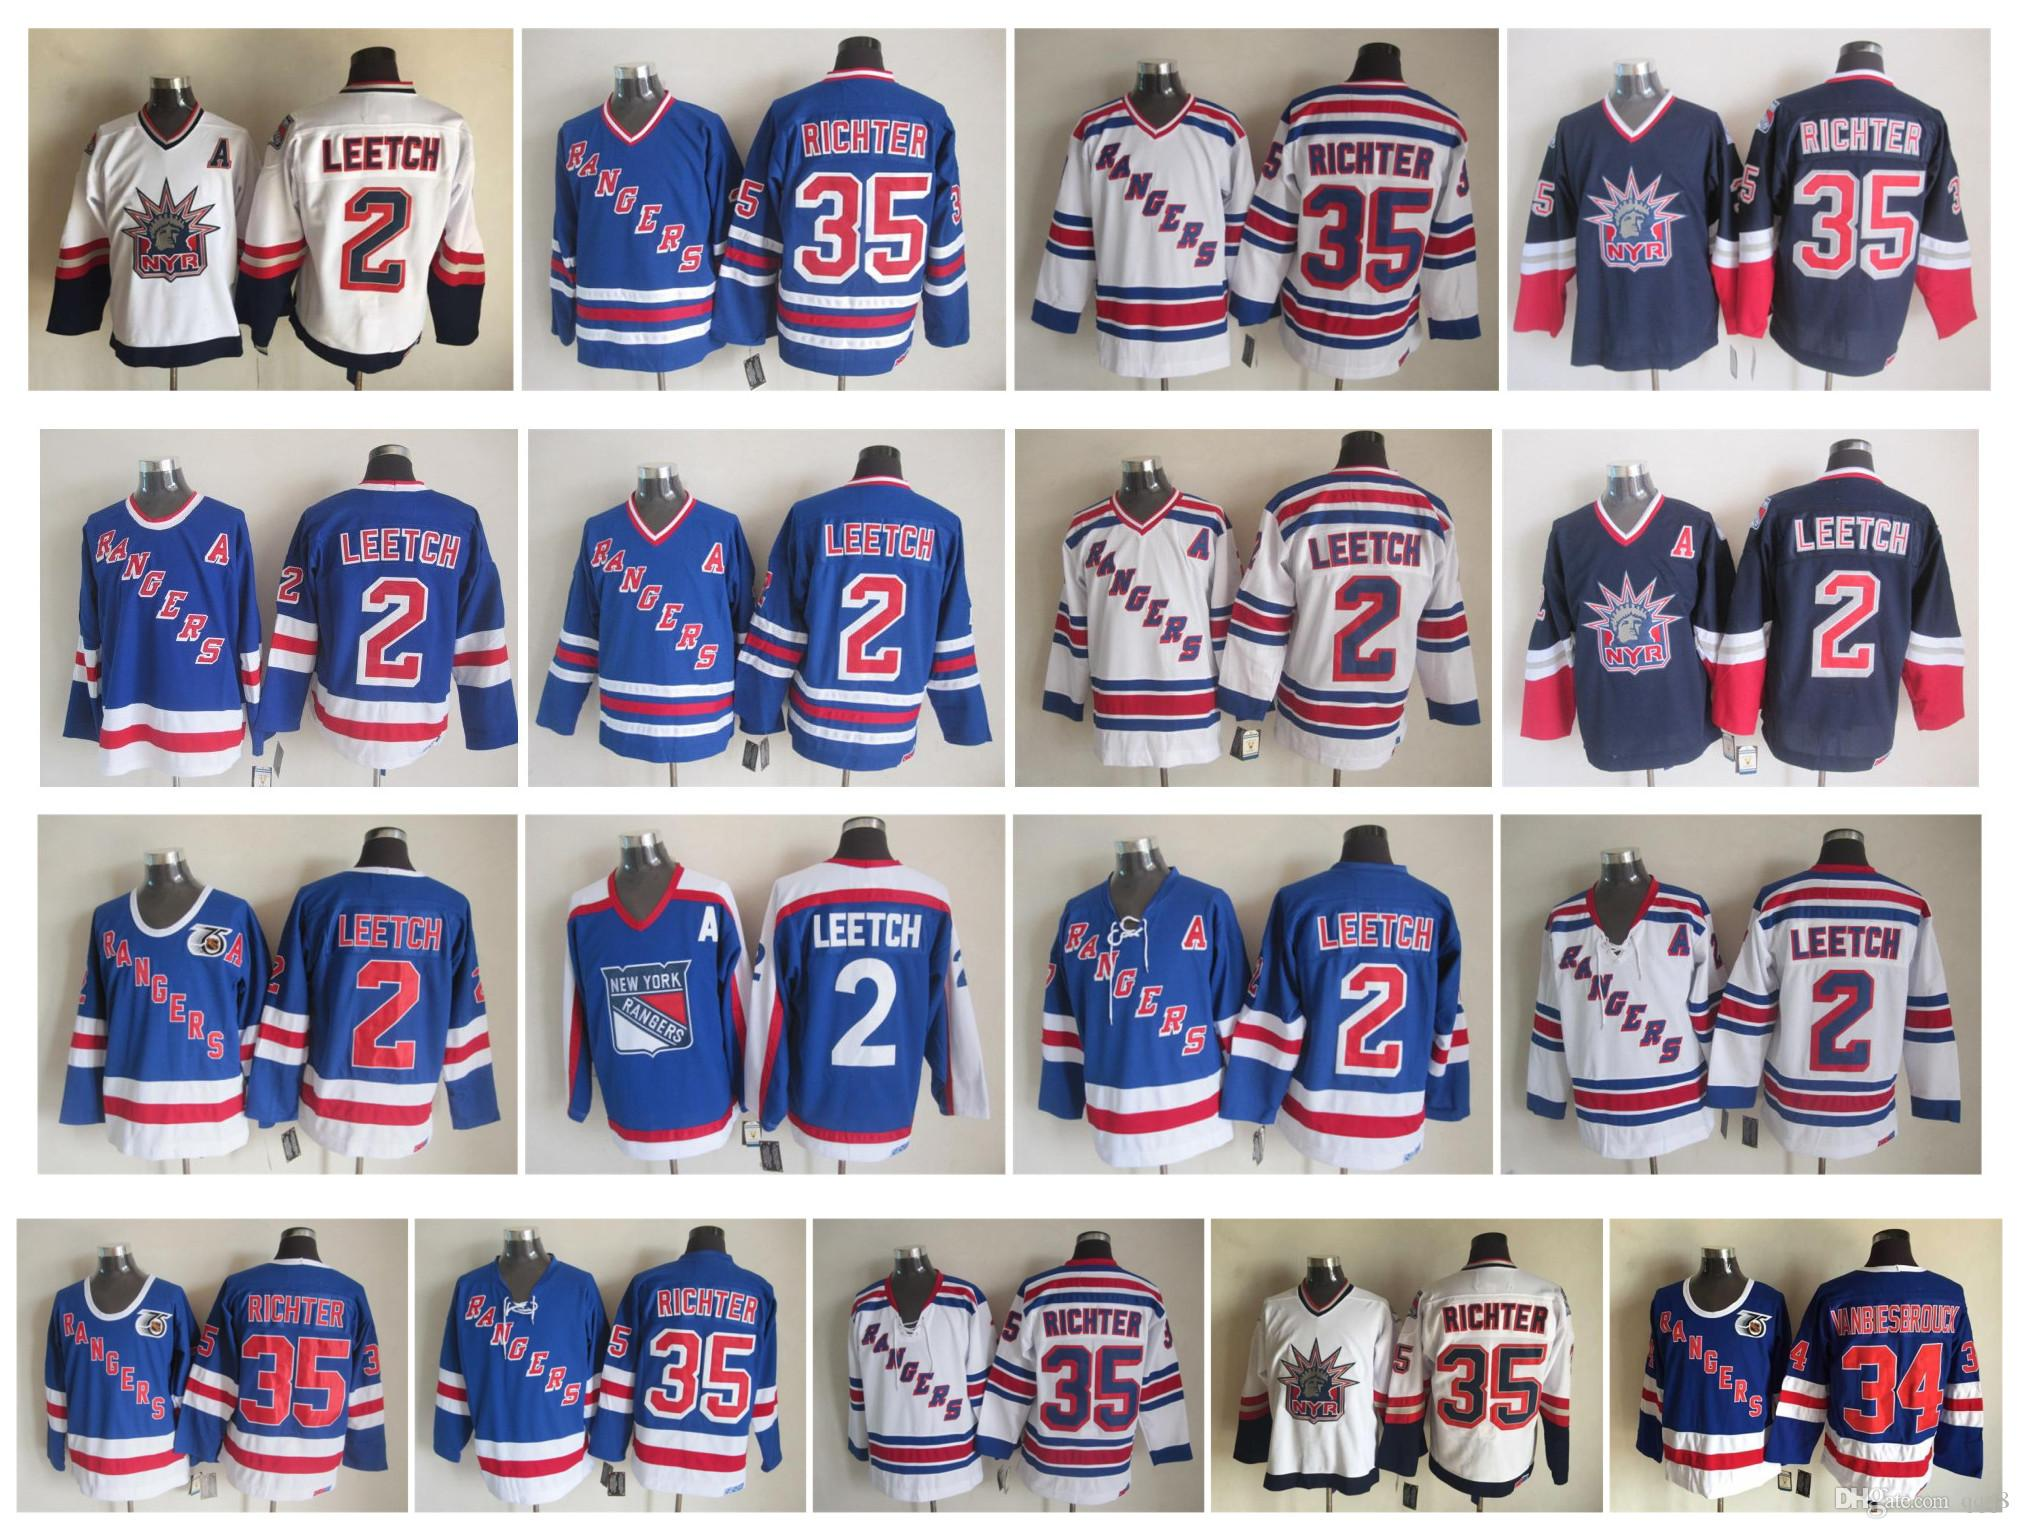 sports shoes b1e6b 8e211 Vintage New York Rangers Jersey 2 Brian Leetch 35 Mike Richter 36 Glenn  Anderson 75th Anniversary Blue White CCM Hockey Jersey